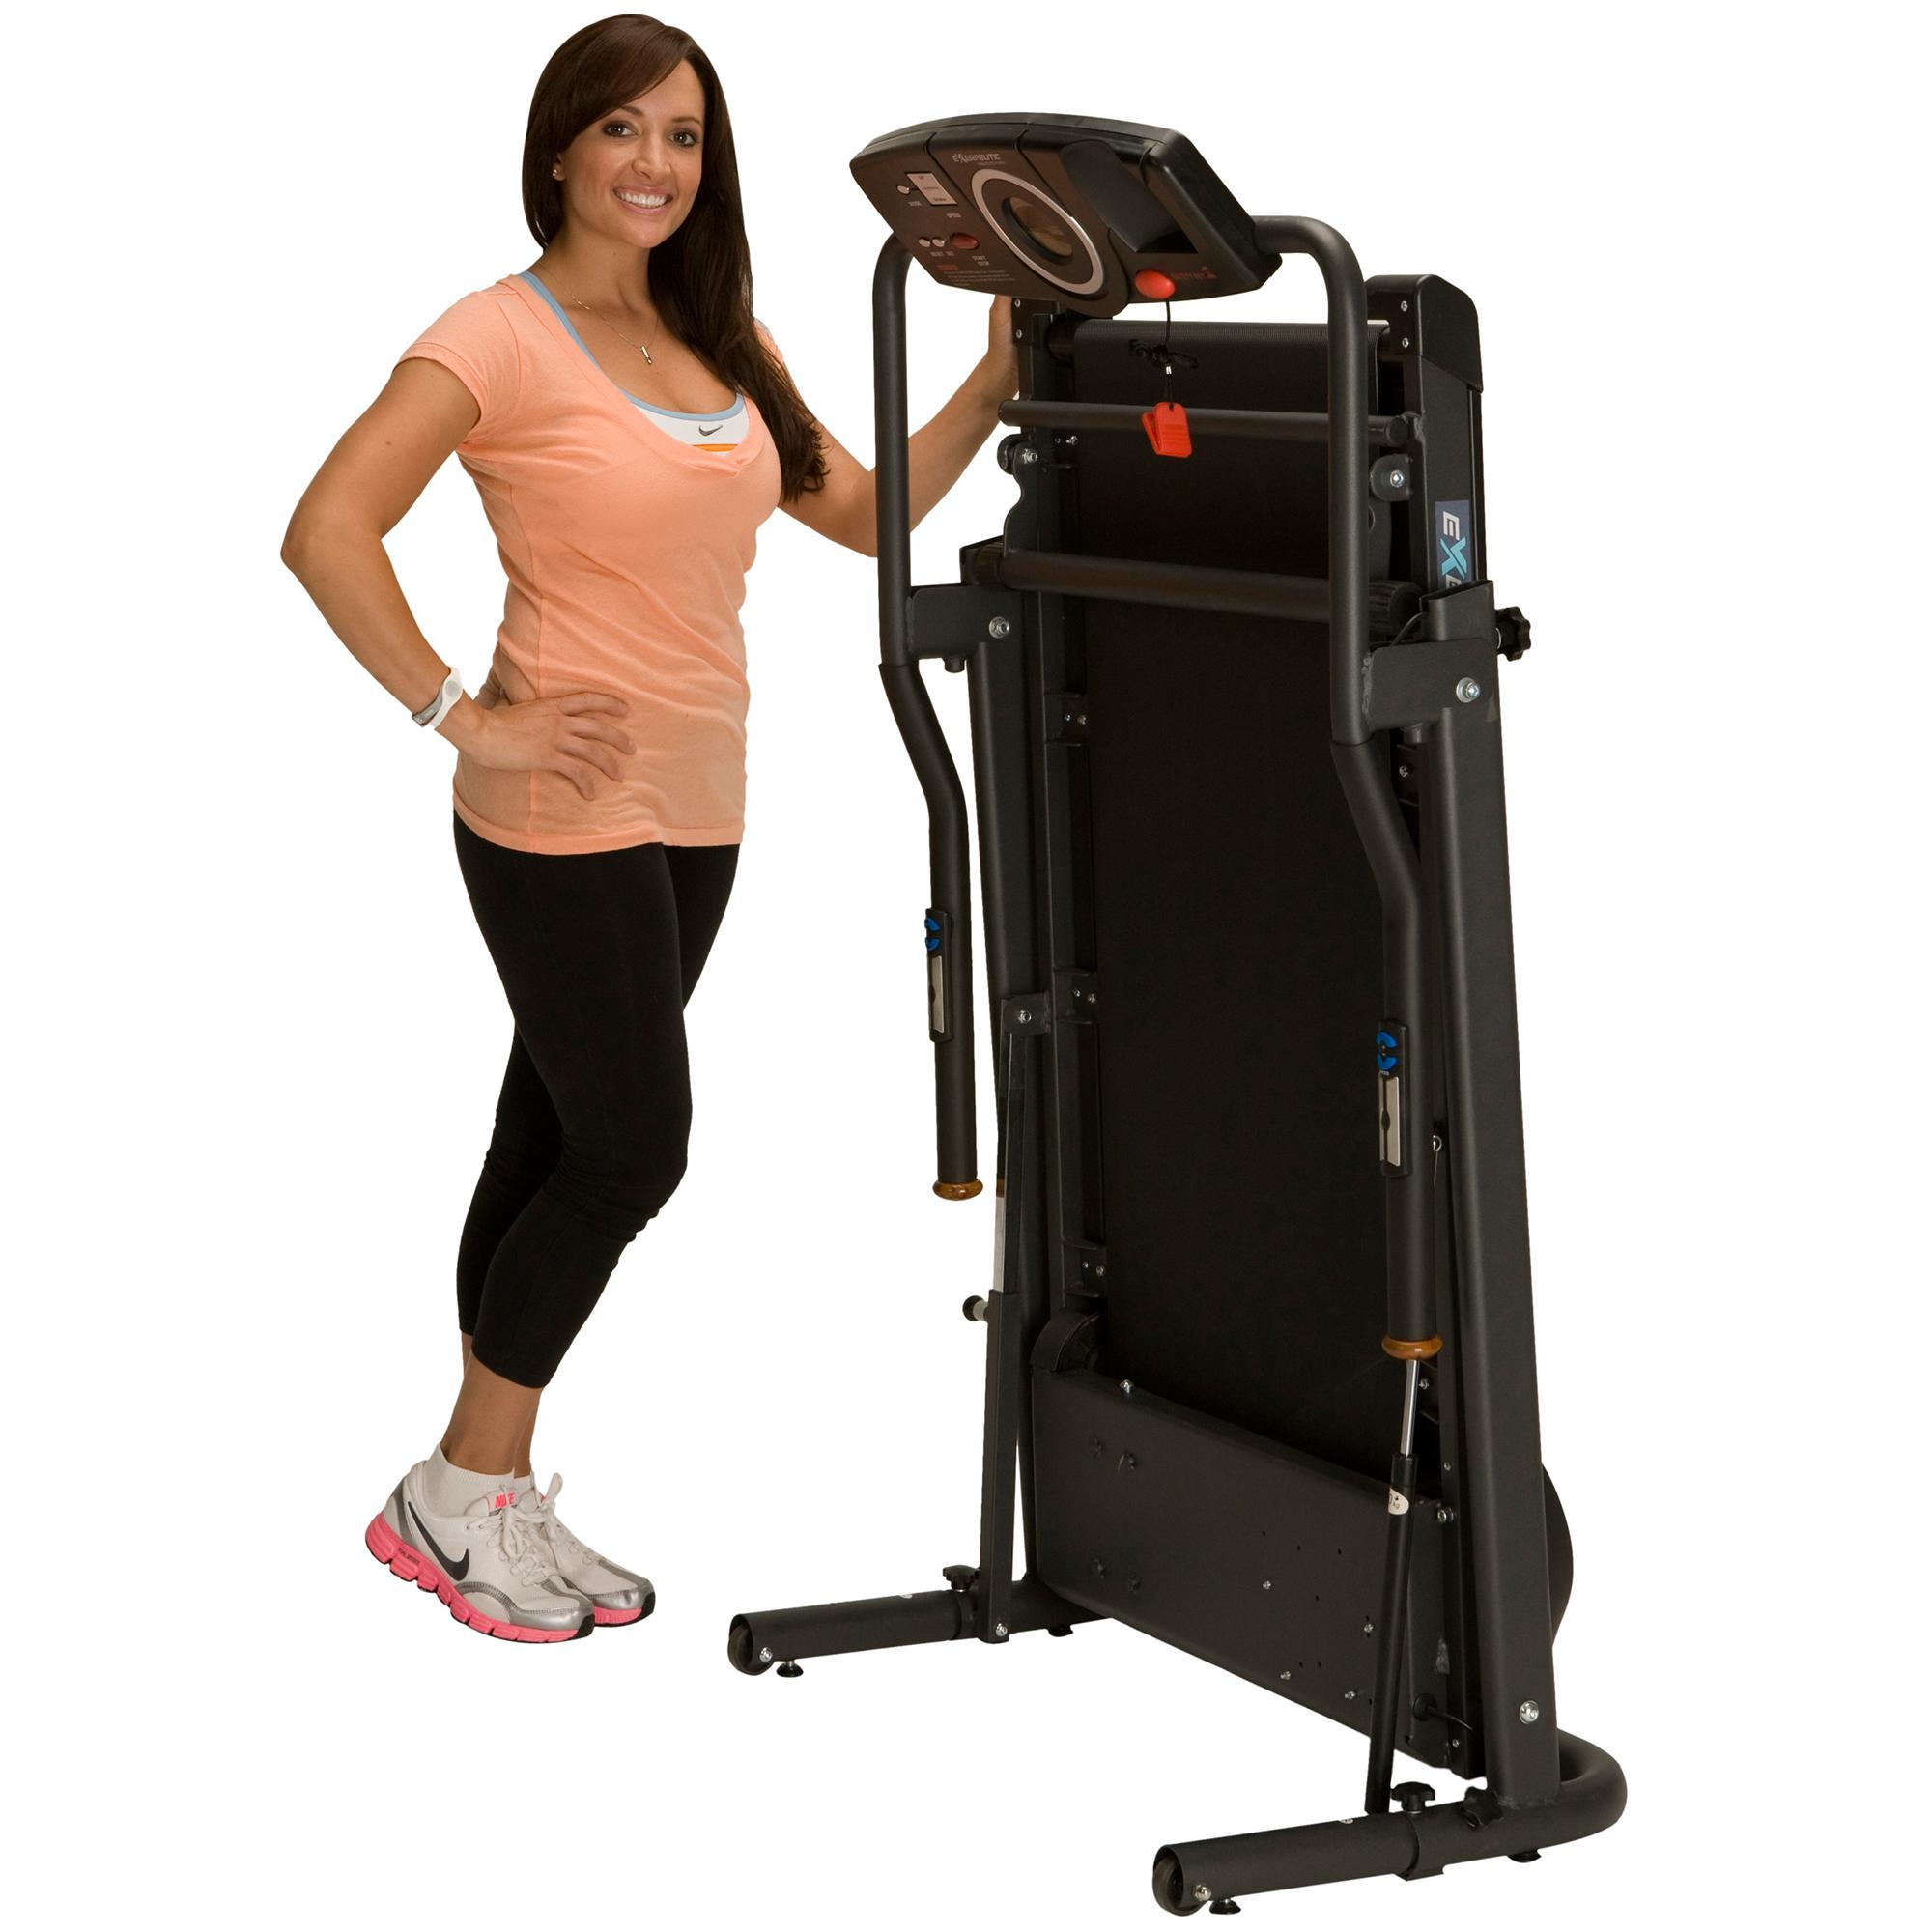 Golds Gym Treadmill 480 Manual: Amazon.com : Exerpeutic TF1000 Ultra High Capacity Walk To